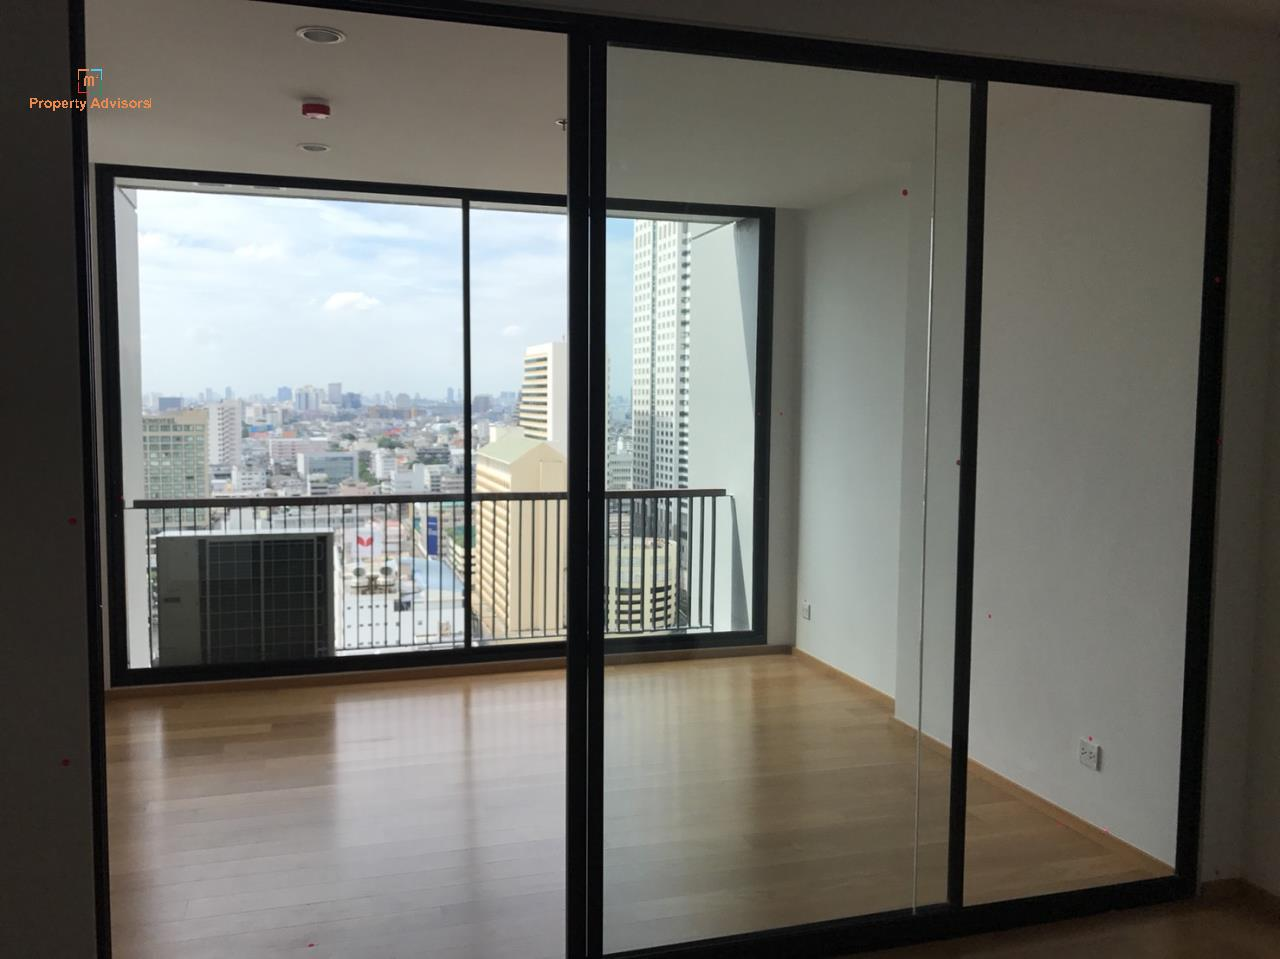 m2 Property Advisors Agency's Noble Revo Silom - New City view high floor room 4